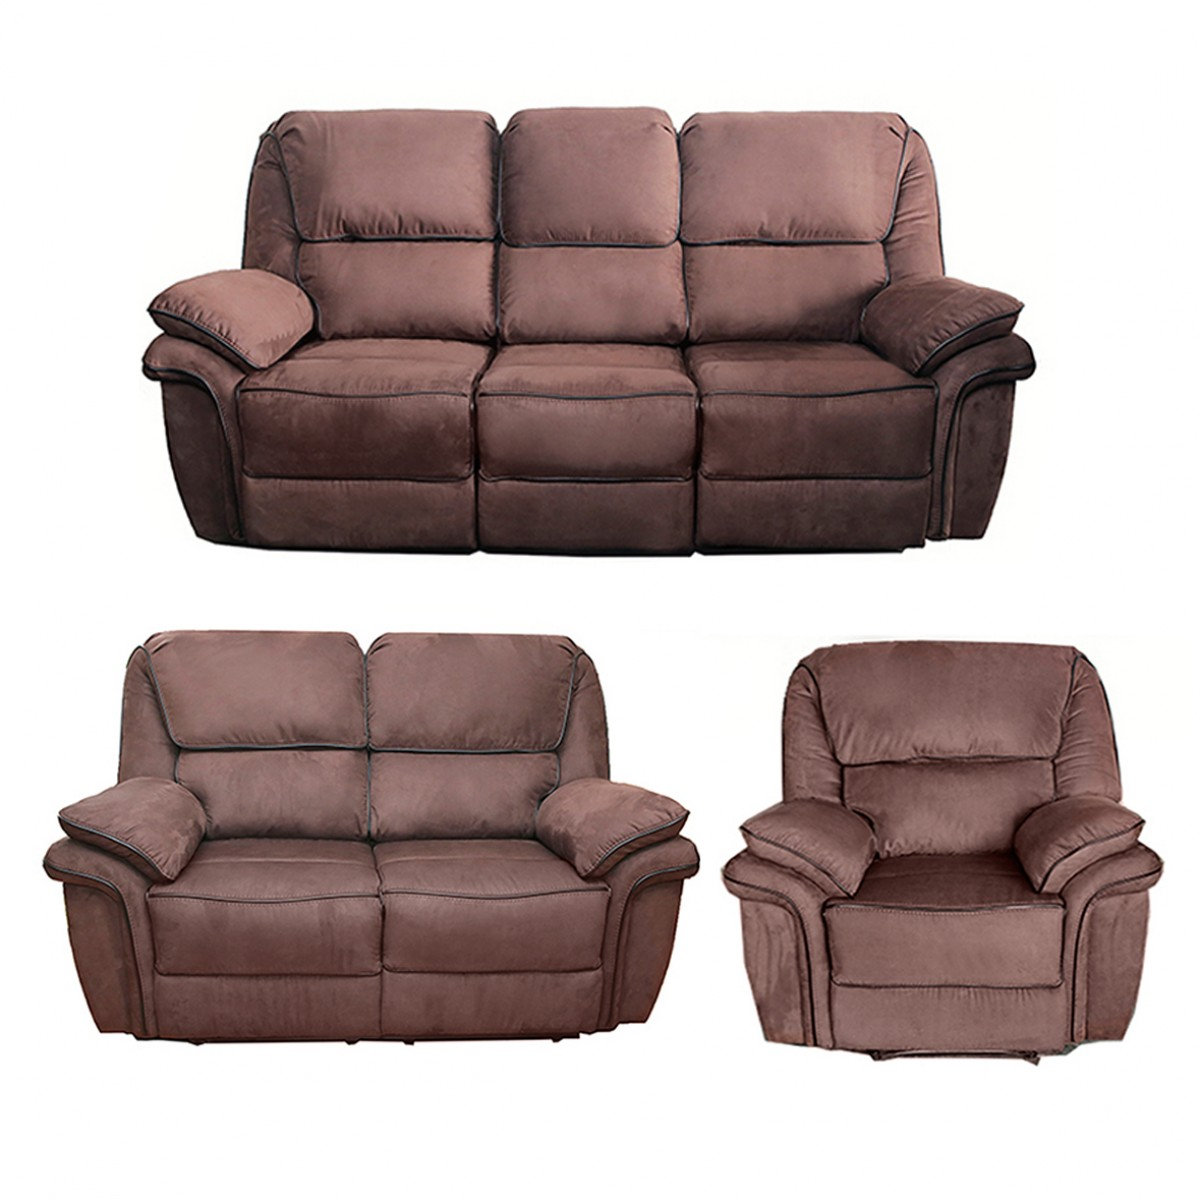 Brown Recliner Sofa Set 3 2 1 Preston Reclining Couches On Sale Comfort Line Ireland